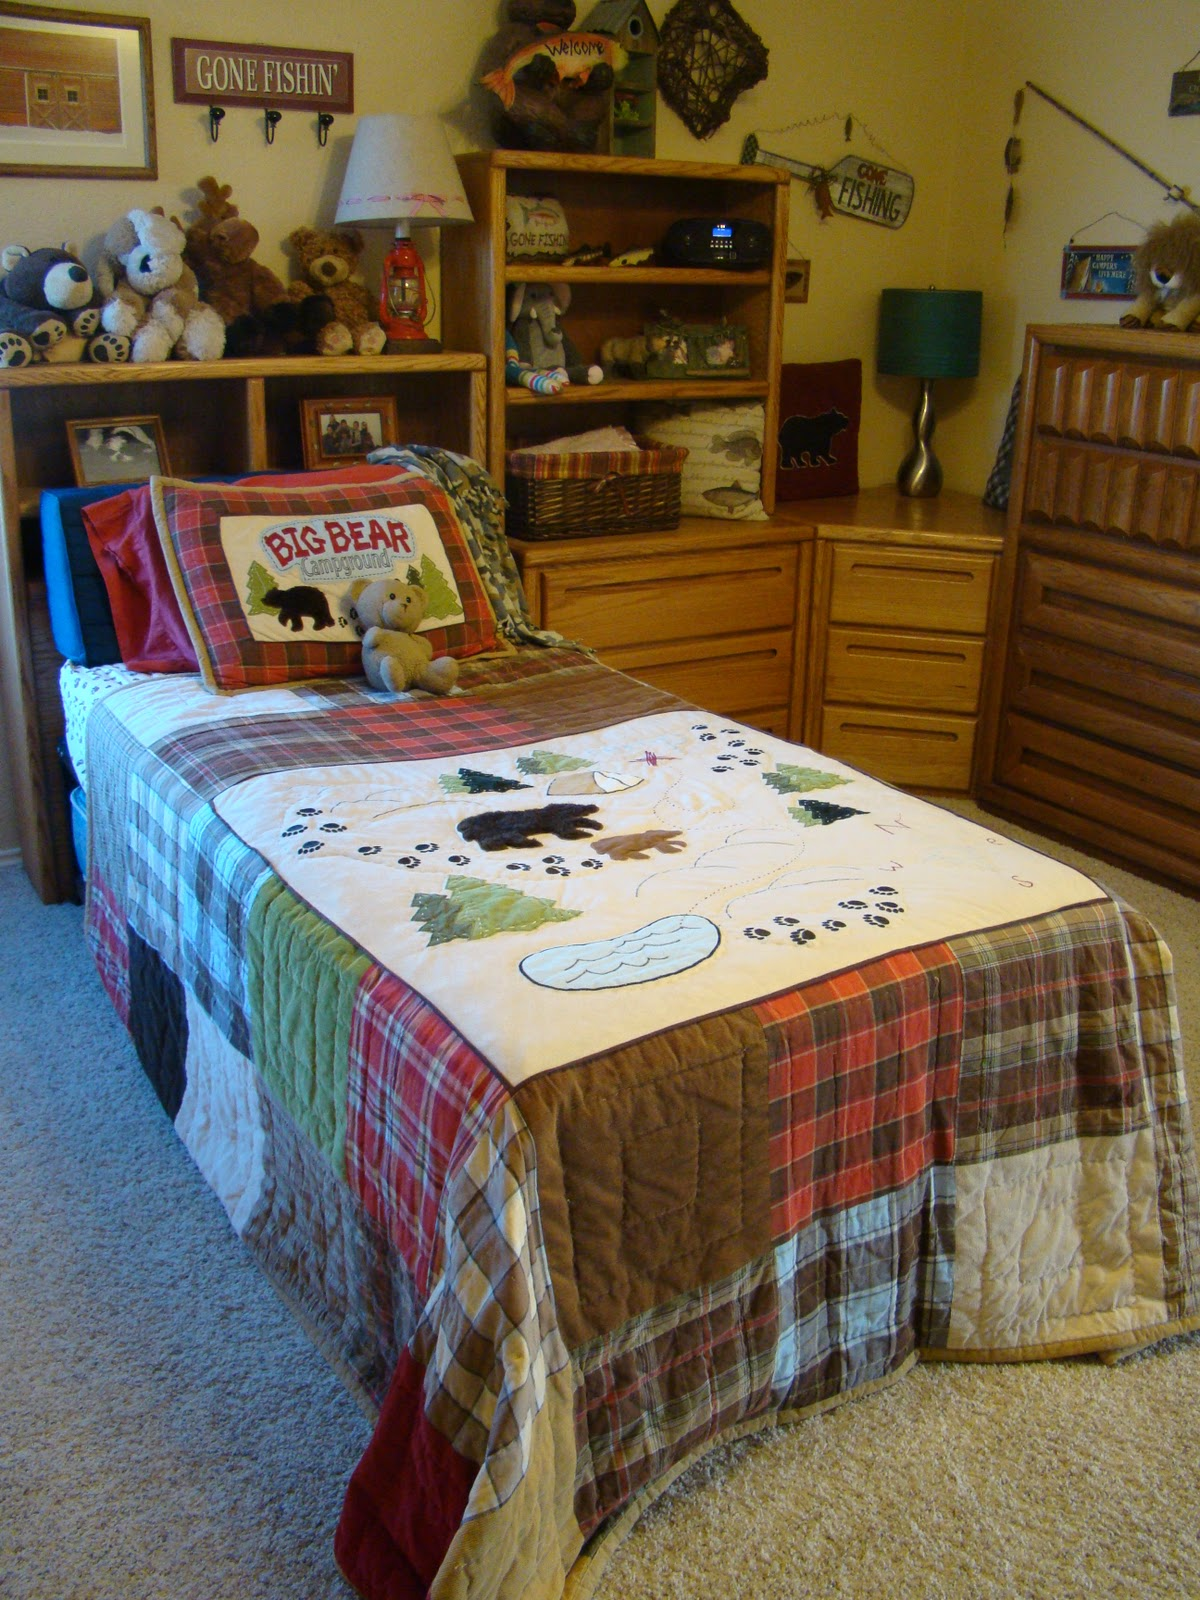 Cabin Theme Rooms http://romanticdomestic.blogspot.com/2011/04/lets-go-fishing.html